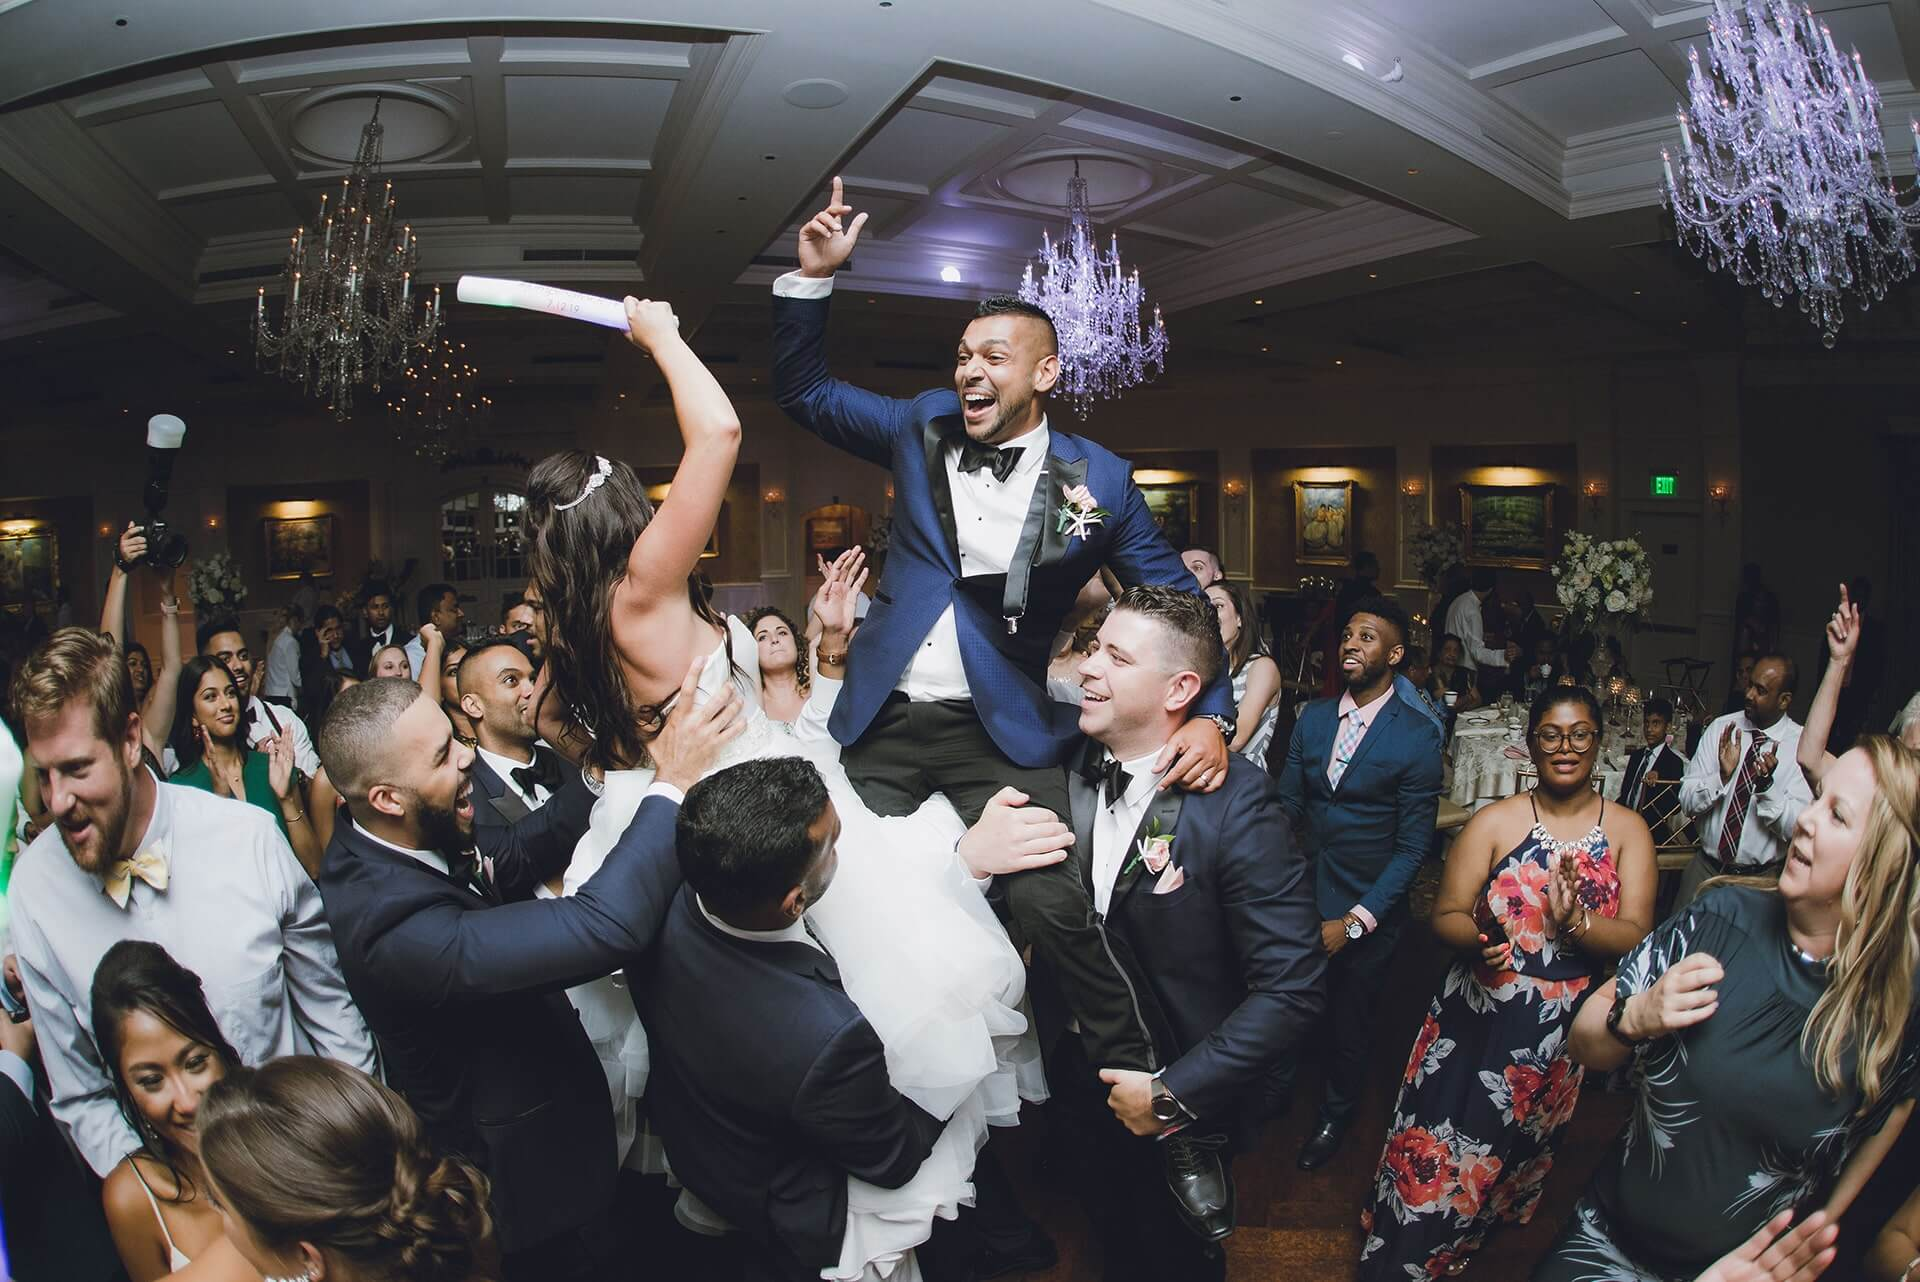 Groom having a blast